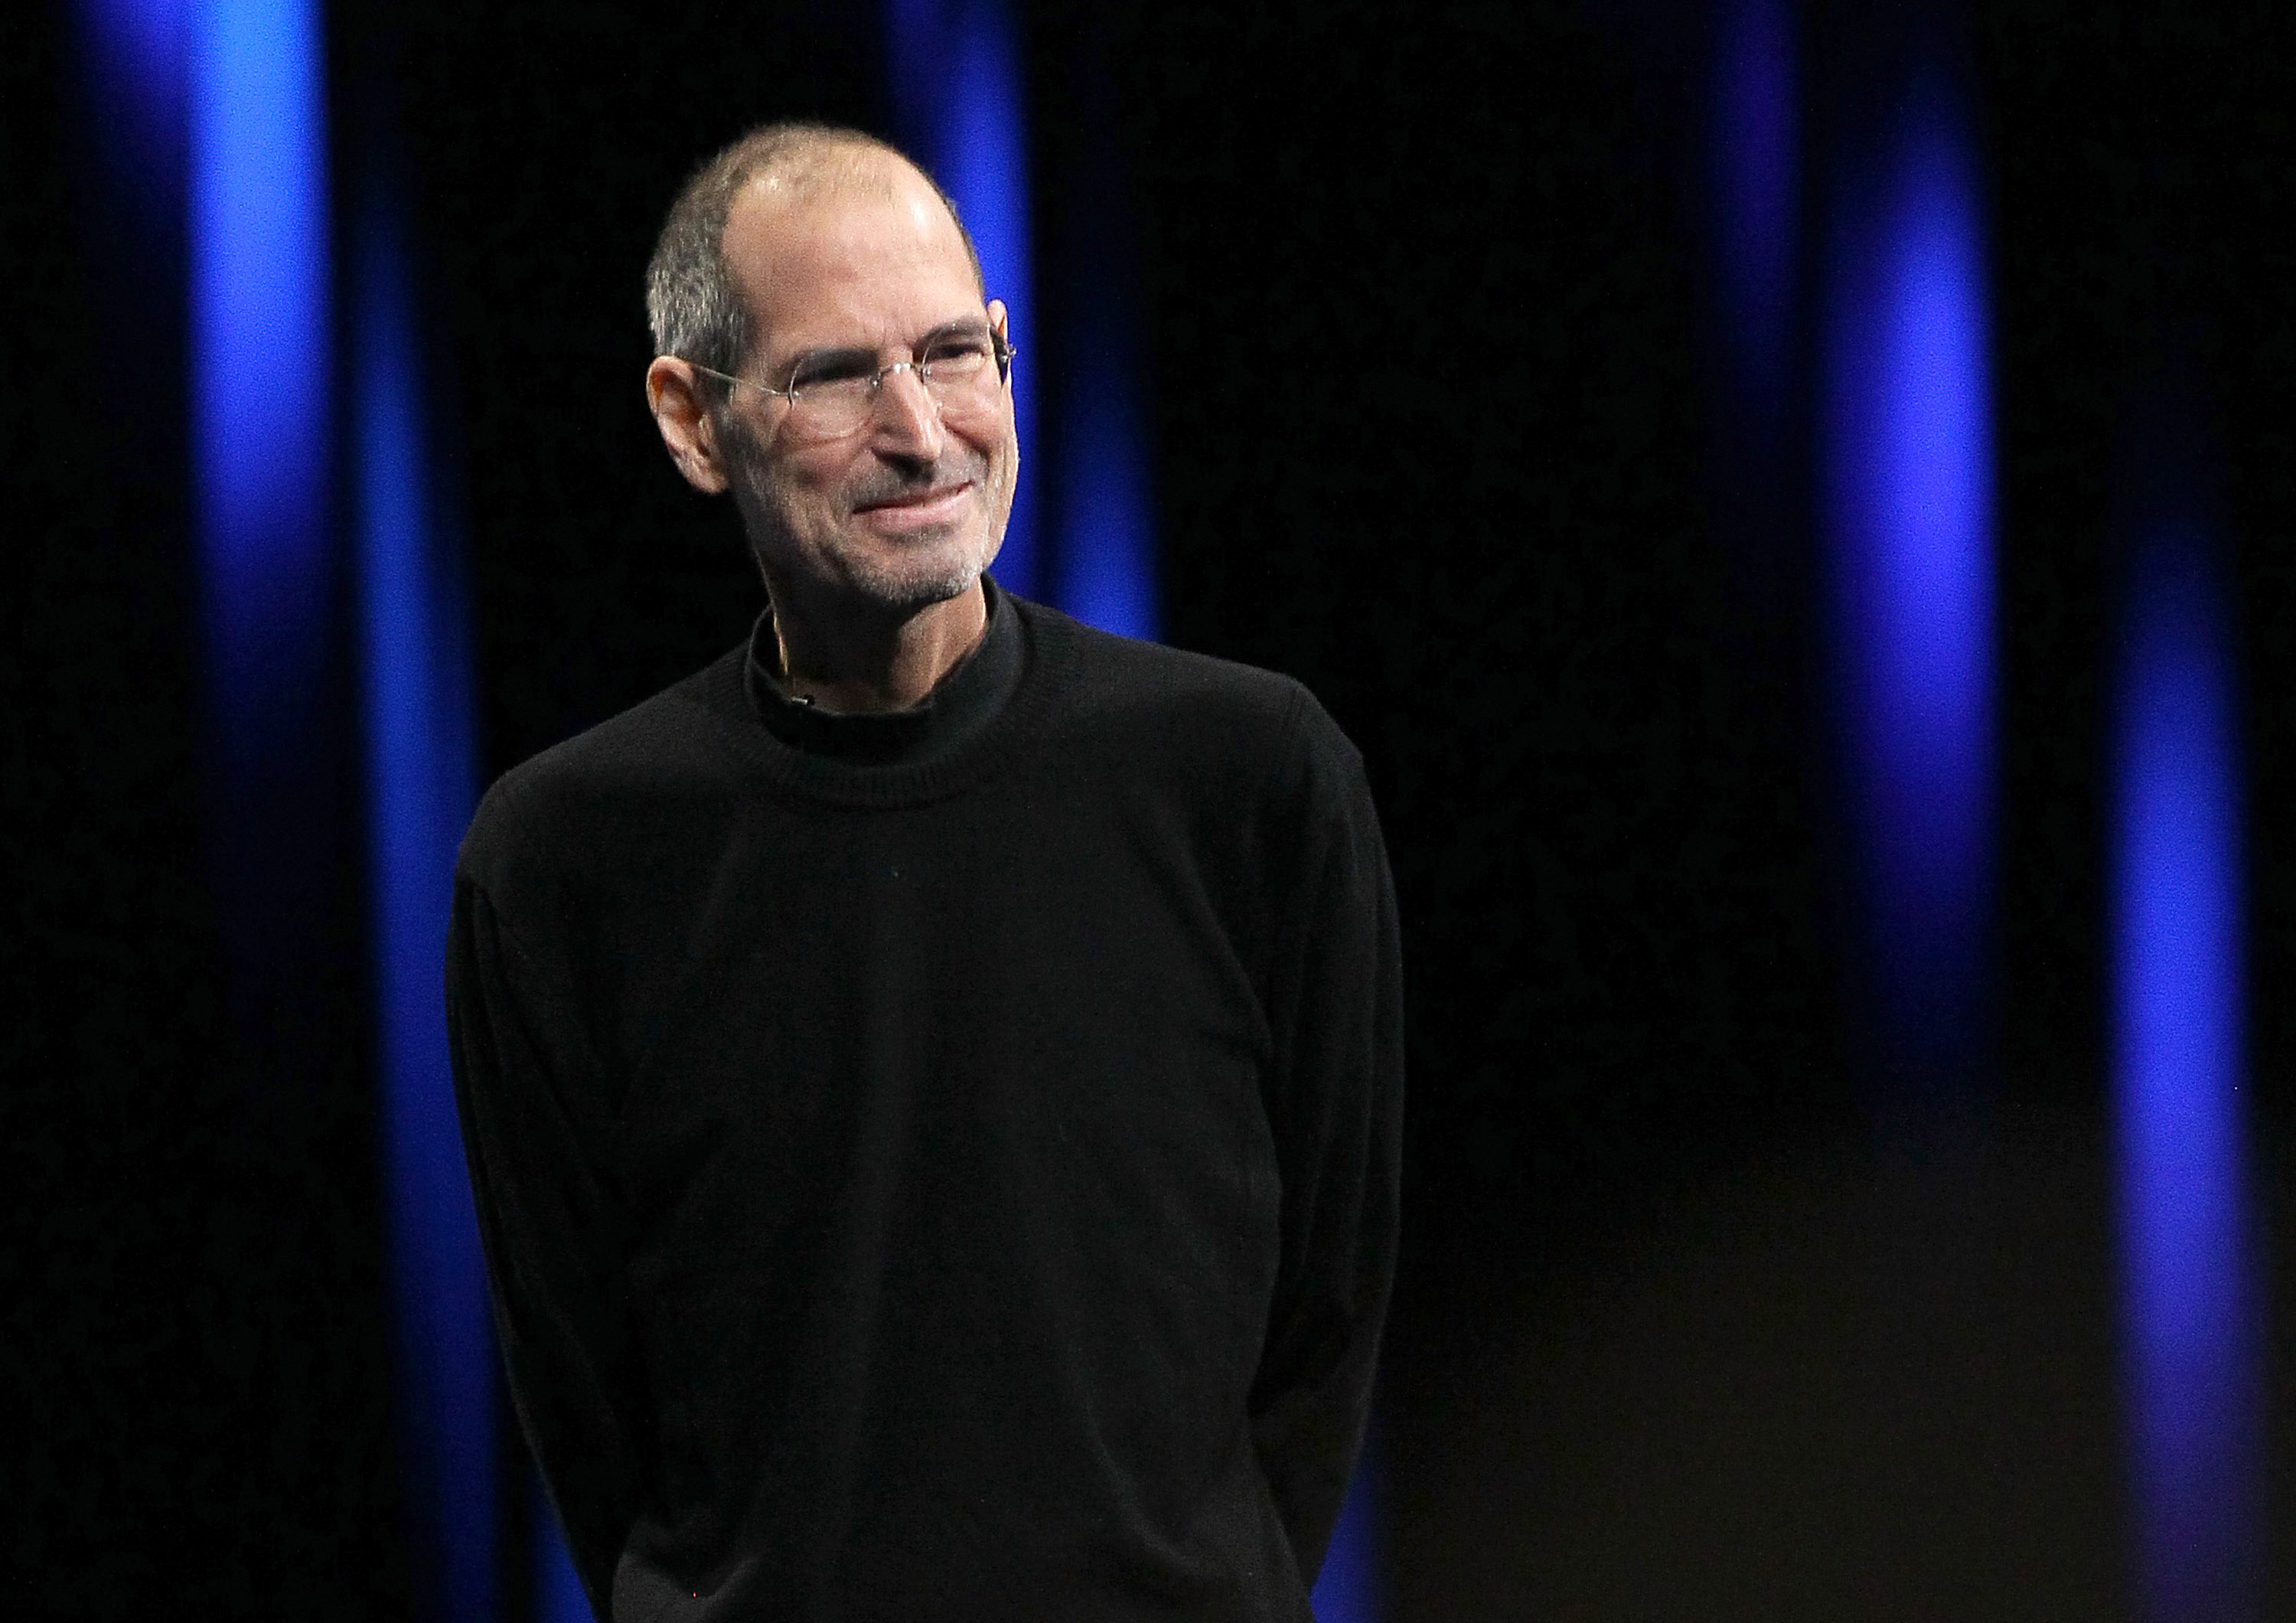 Apple CEO Steve Jobs delivers the keynote address at the 2011 Apple World Wide Developers Conference at the Moscone Center on June 6, 2011 in San Francisco.